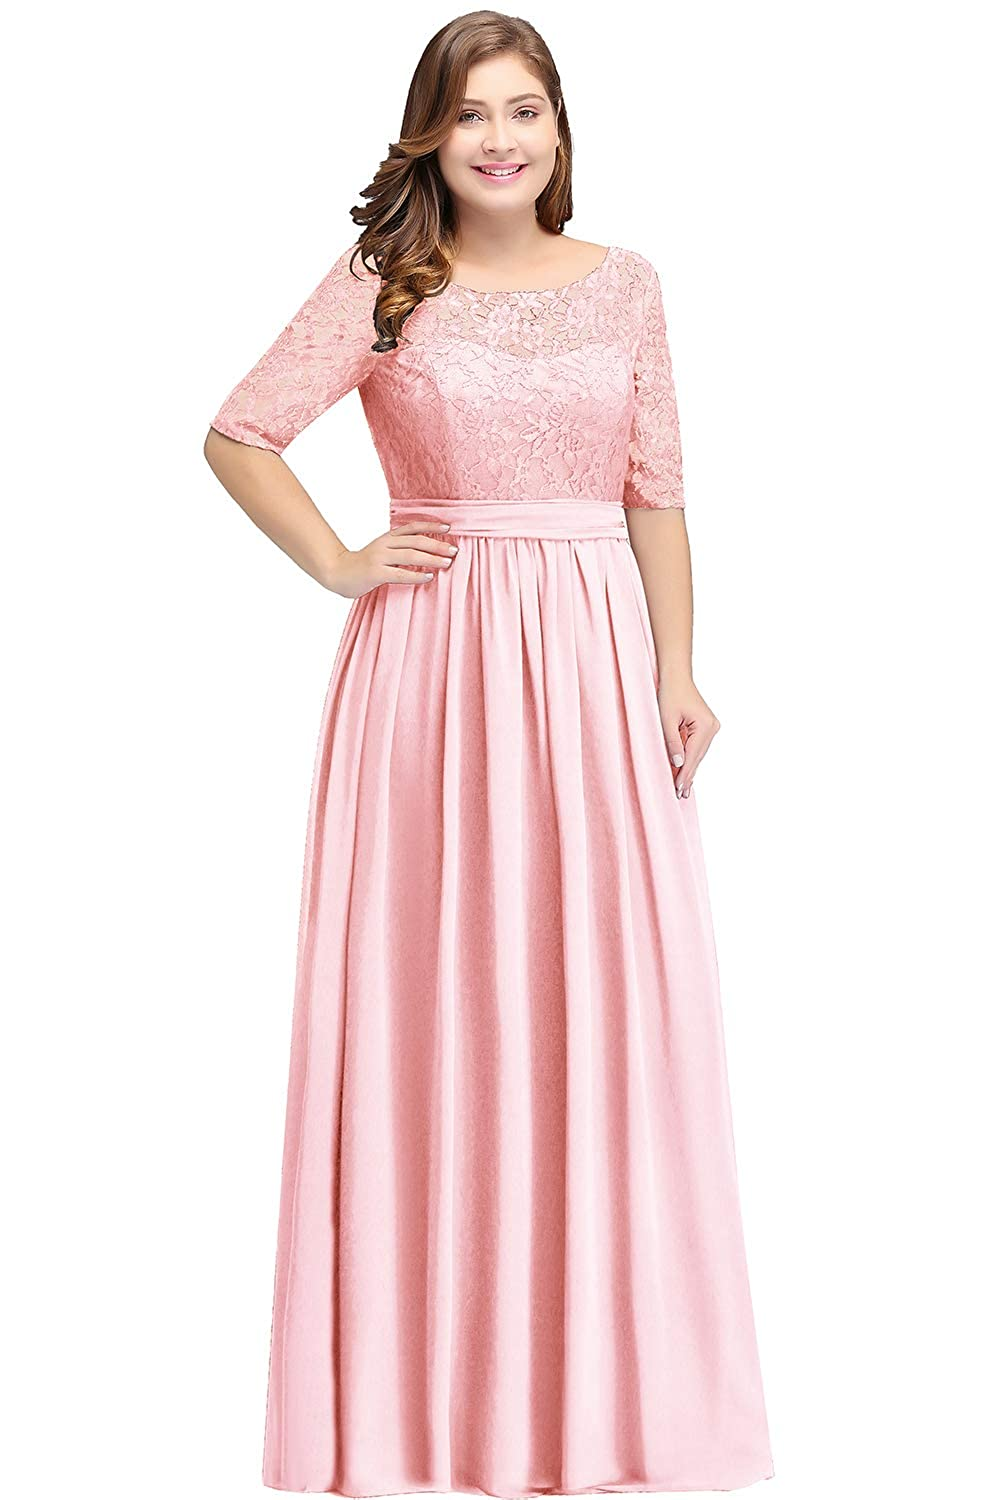 Babyonlinedress Simple Wedding Bridesmaid Dresses Long Chiffon Lace Plus Size Prom Formal Evening Gowns ZLCPS526